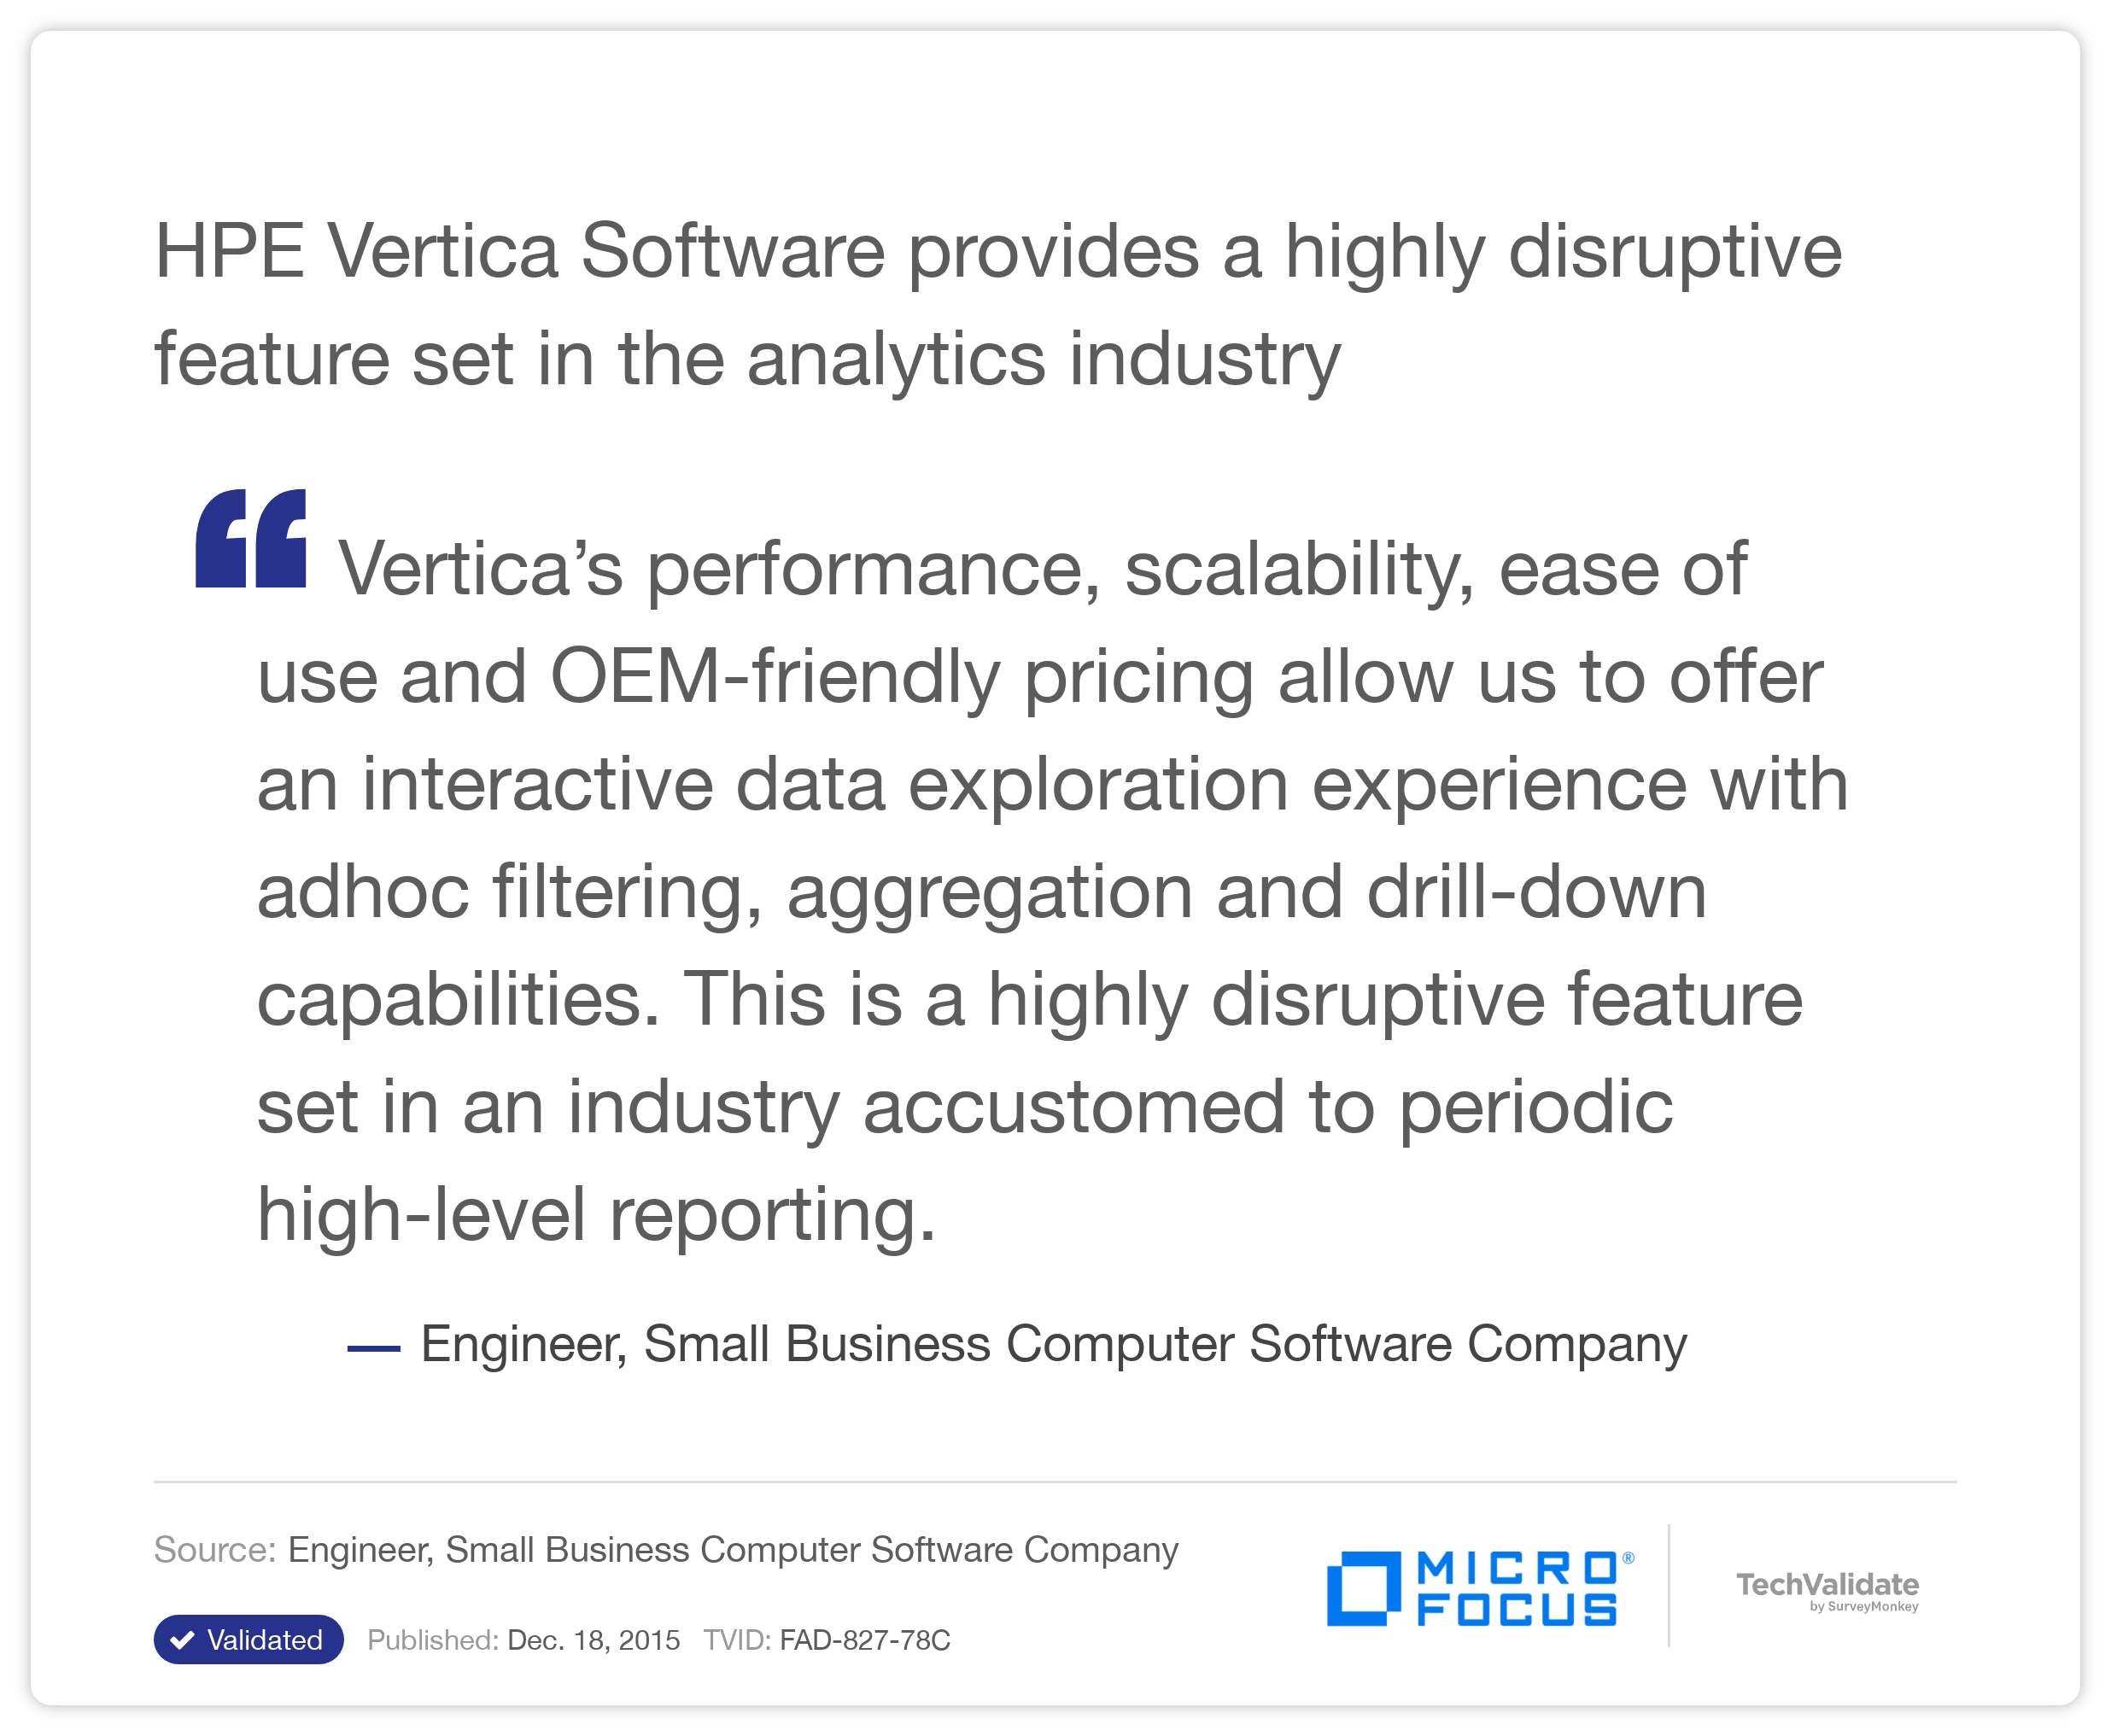 HP Vertica Software provides a highly disruptive feature set in the analytics industry